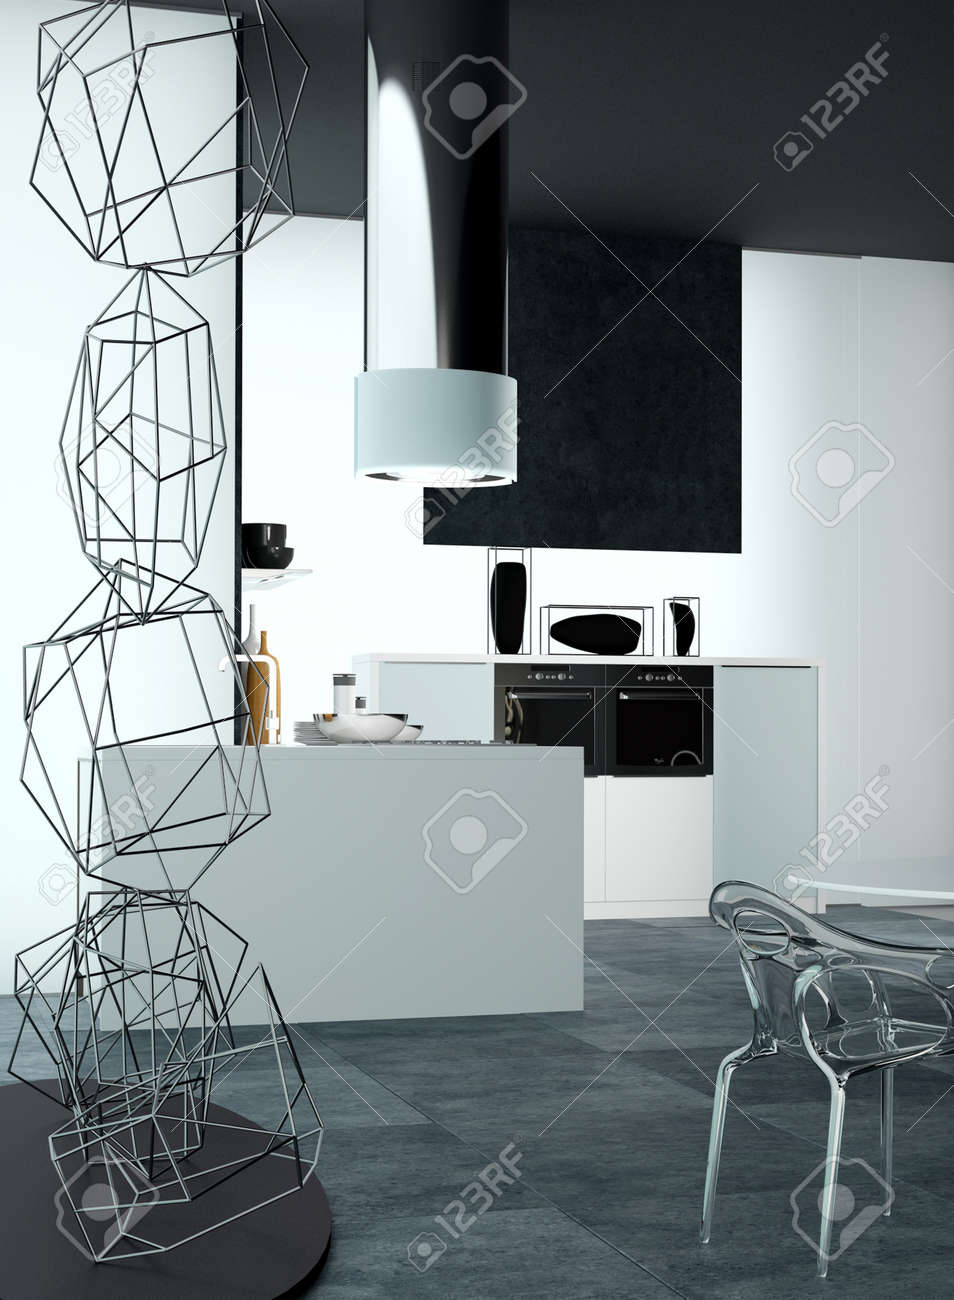 3d design of an elegant home kitchen area with wire art decoration